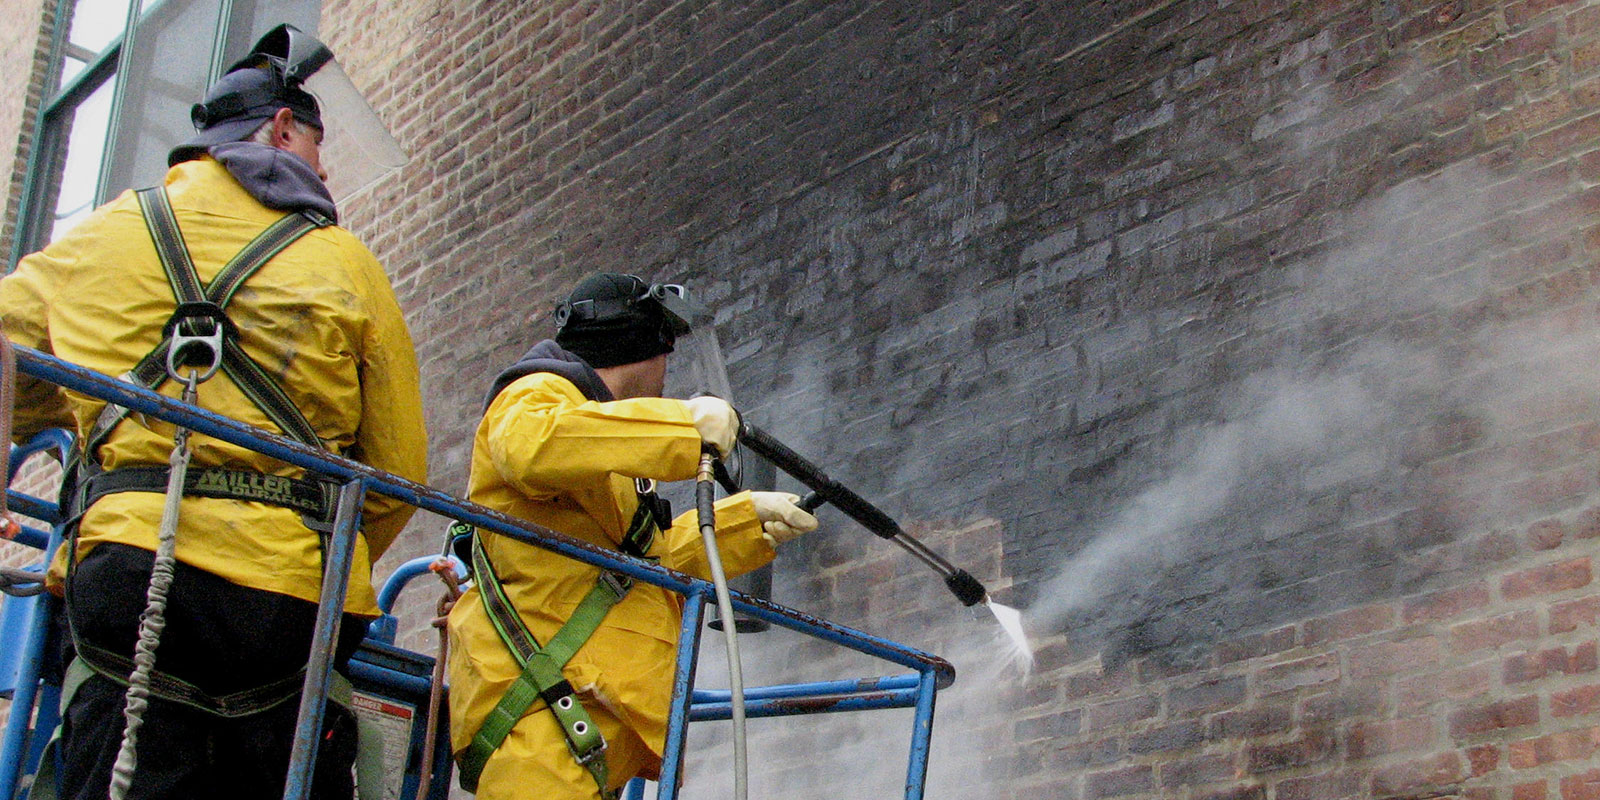 Pressure Cleaning & Graffiti Removal